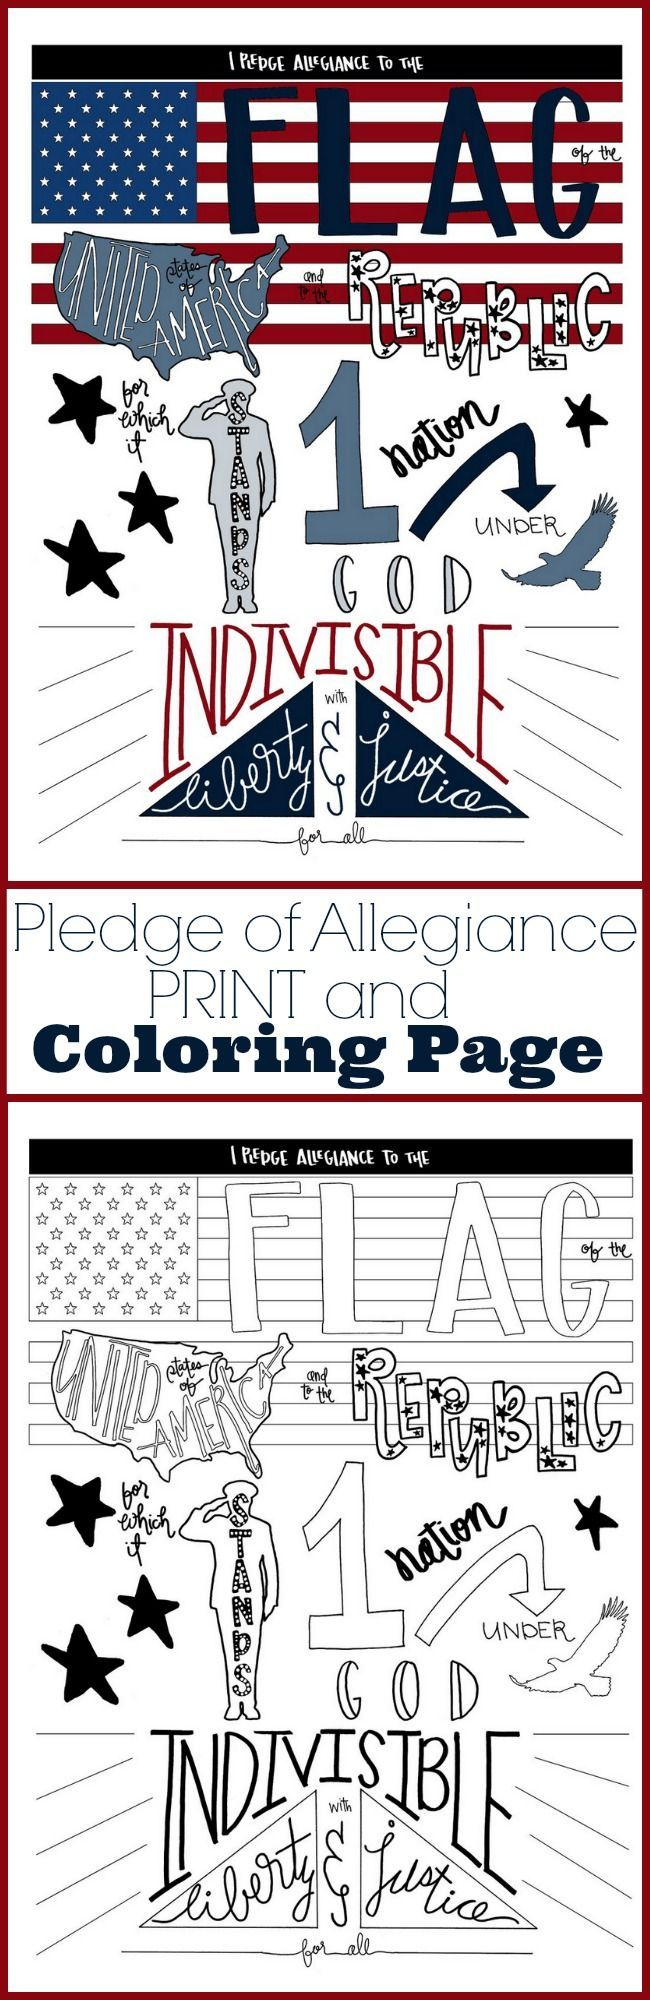 4th of july free printable coloring pages - A Hand Lettered Pledge Of Allegiance Coloring Page Printable